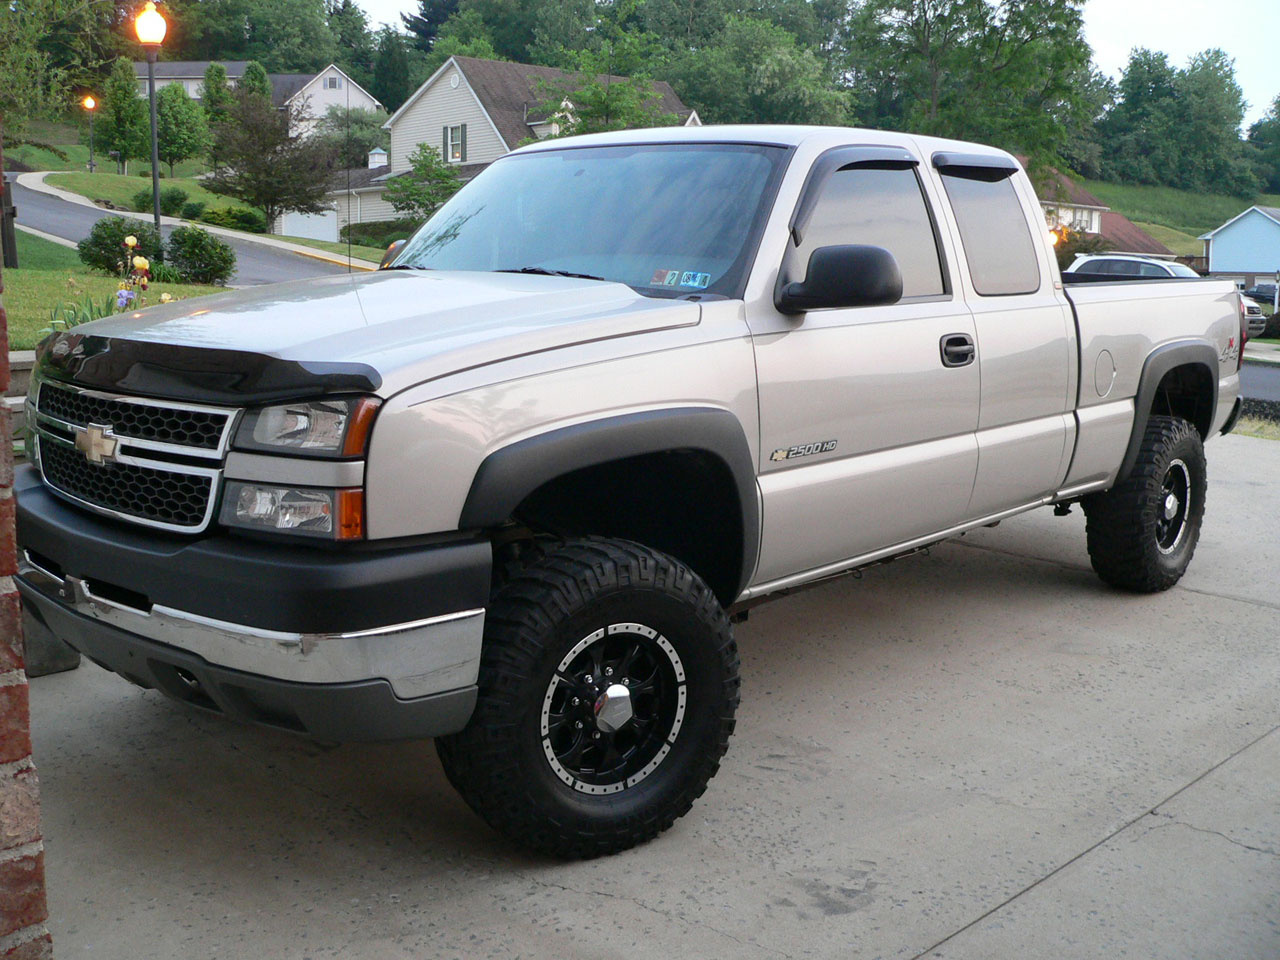 Picture of 2005 chevrolet silverado 2500hd ls extended cab sb hd exterior gallery_worthy